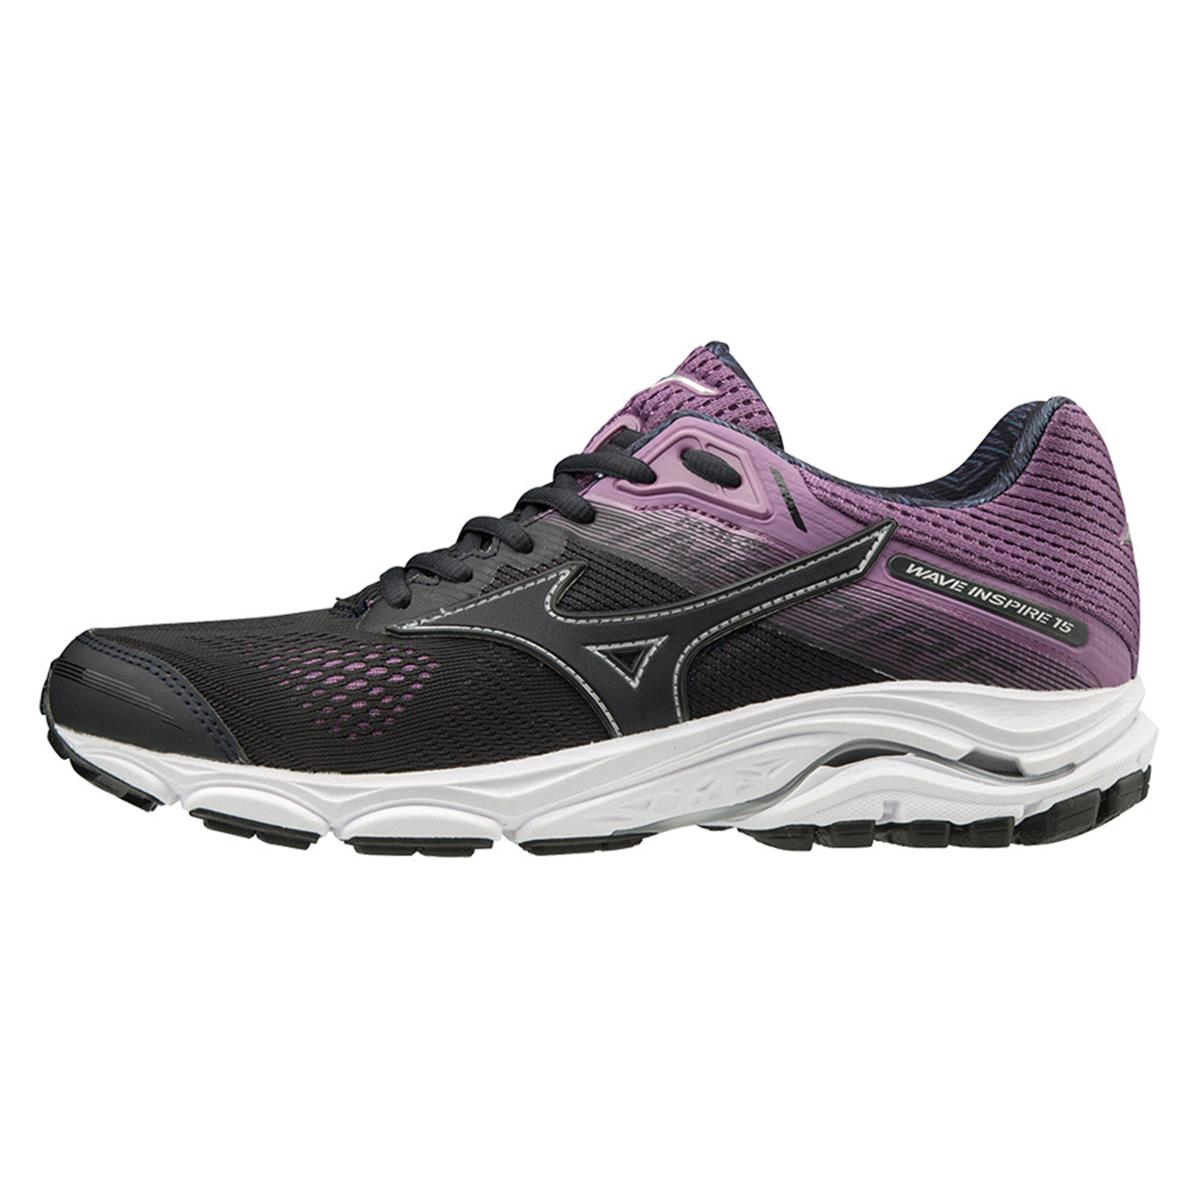 Mizuno Wave Inspire 15 Womens Running Shoes (Blue Graphite-Chinese Violet)